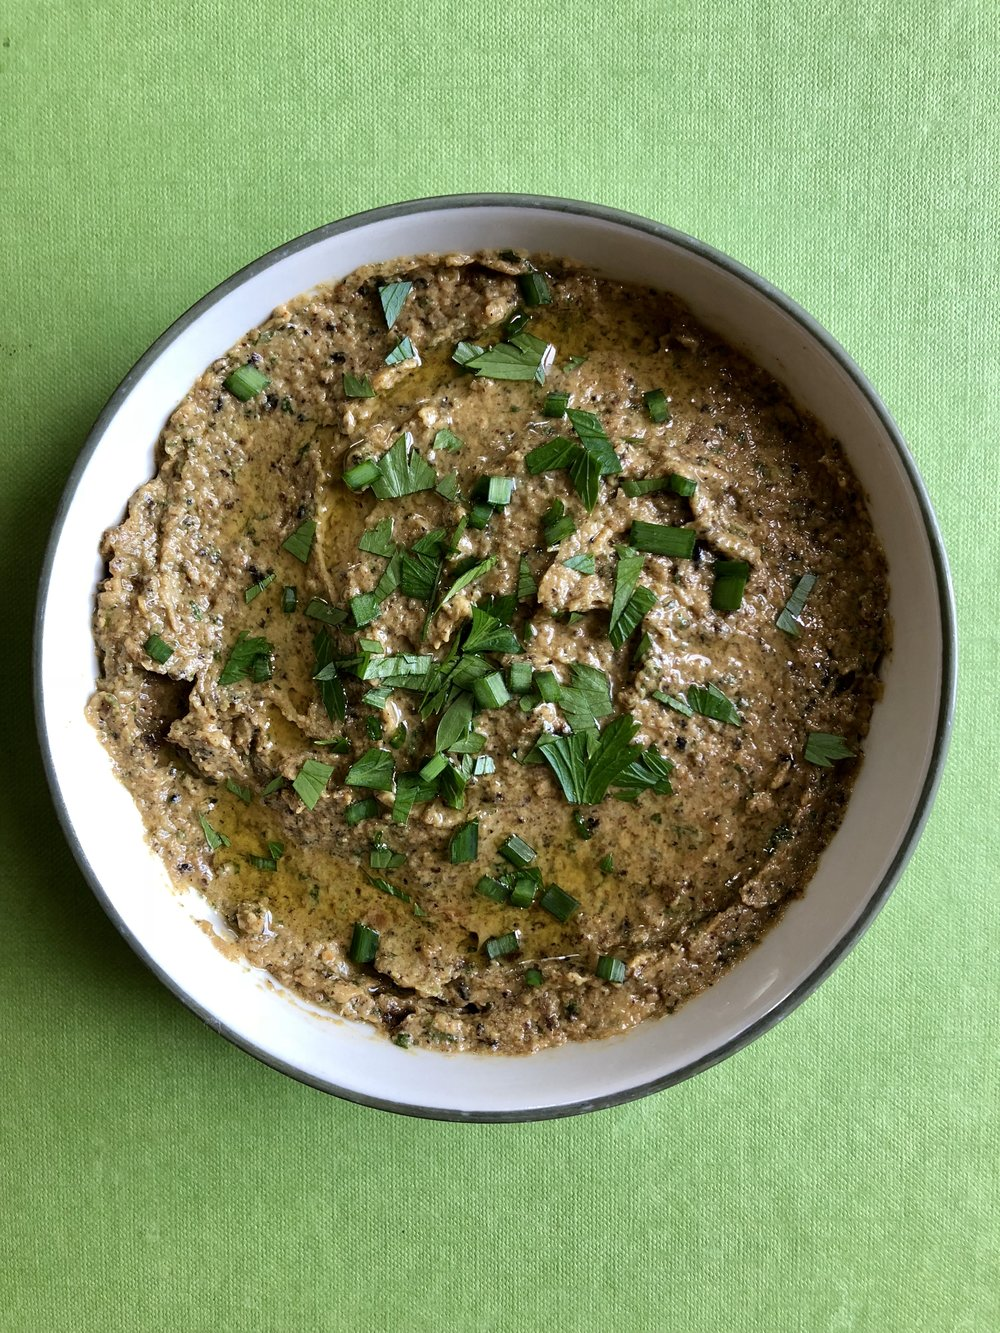 Baba ganouj with a drizzle of olive oil and sprinkle of herbs to serve. Photo by Heather Cross